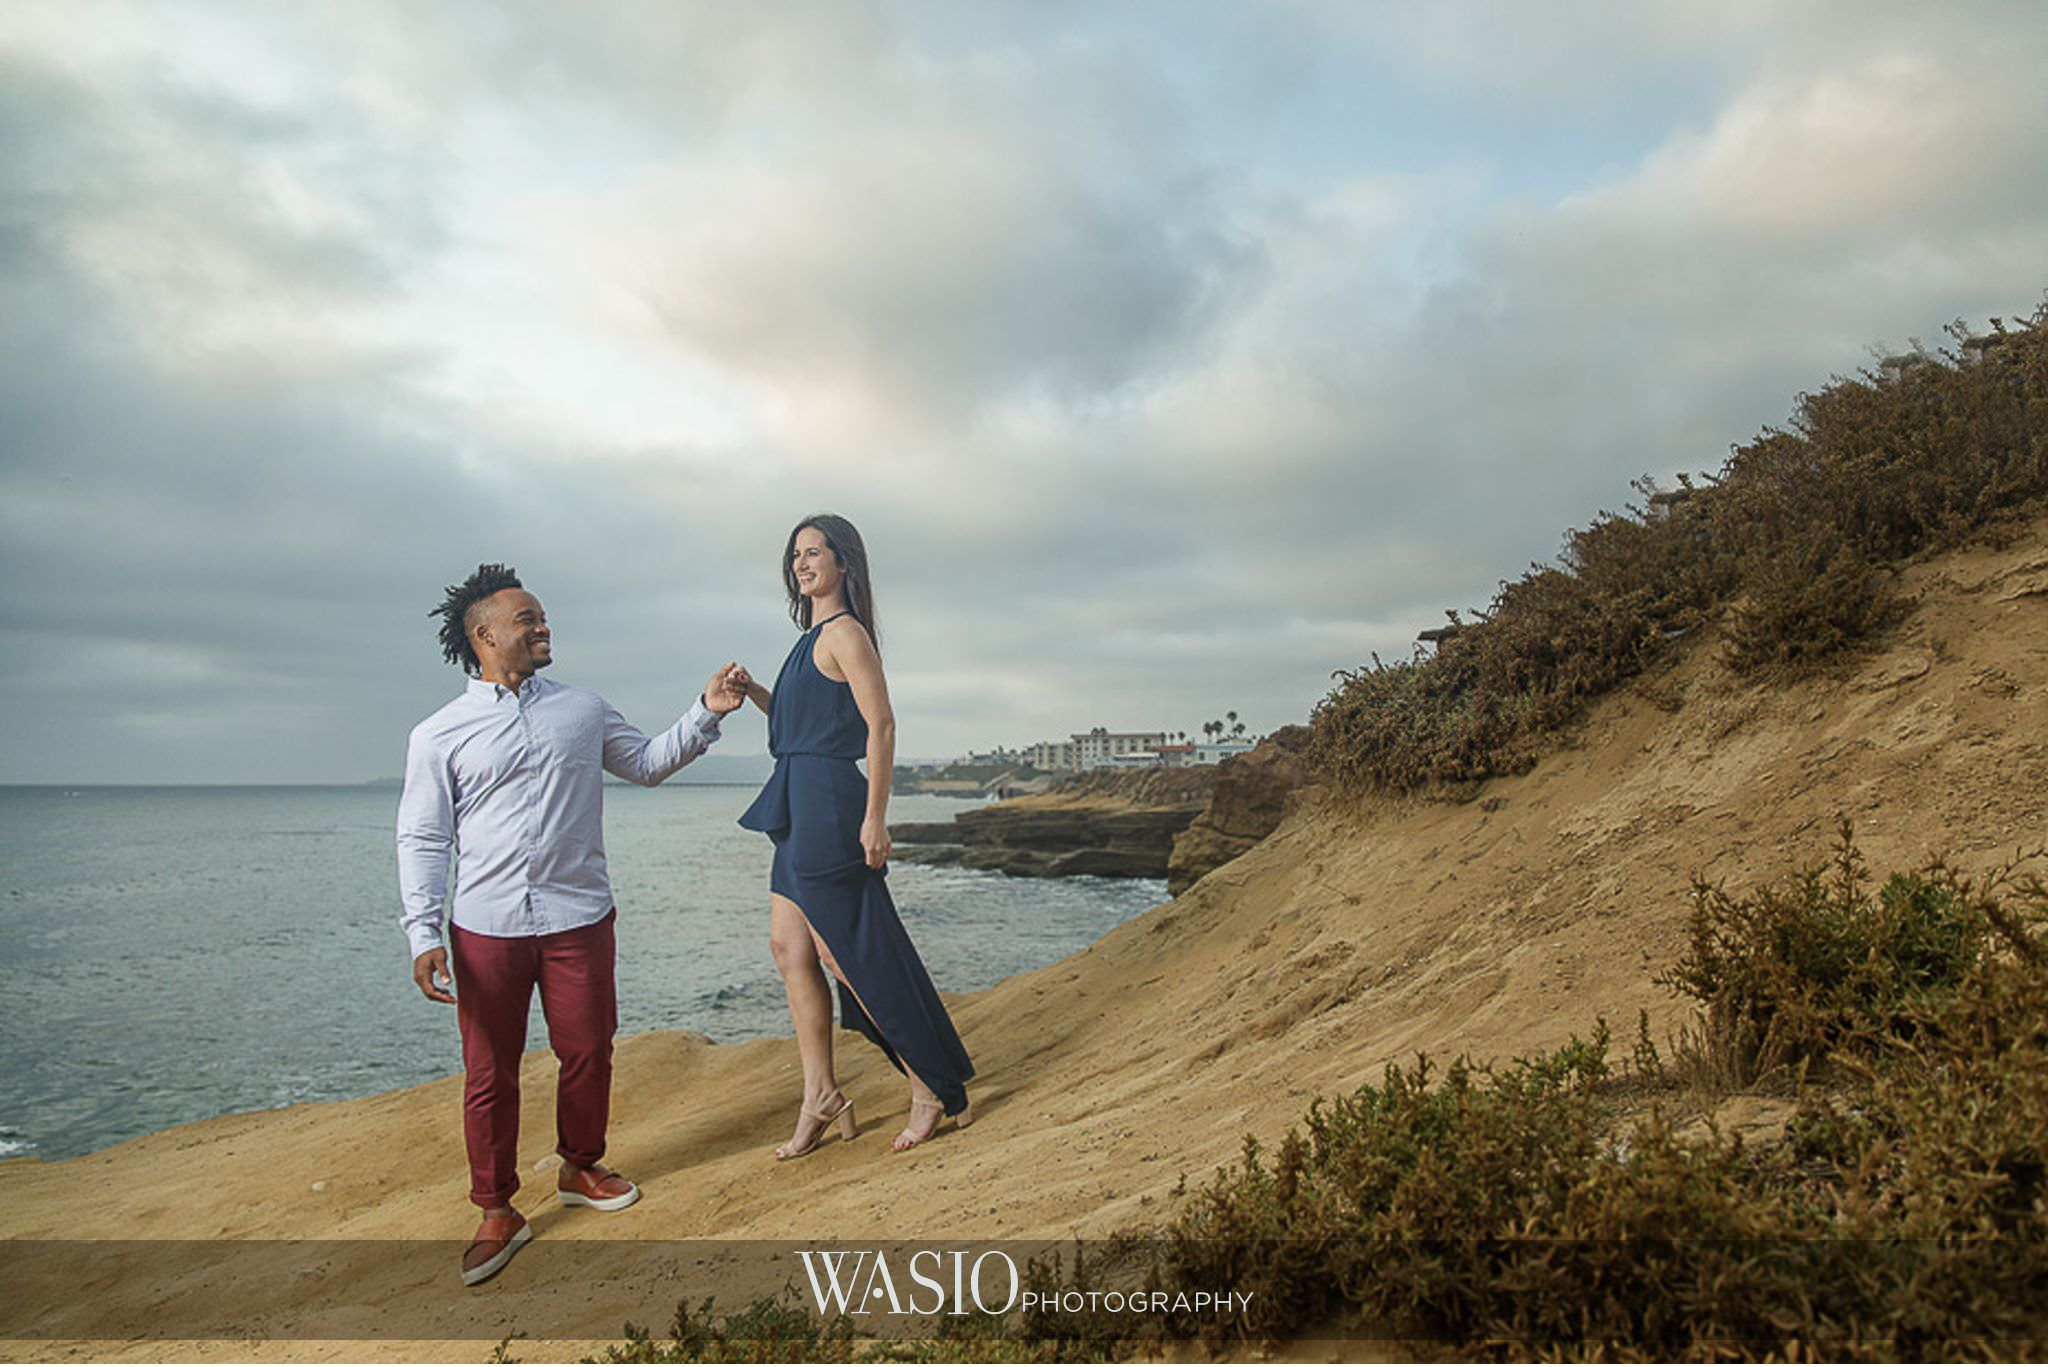 Sunset-Cliffs-San-Diego-Engagement-dramatic-clouds-ocean-view-inspiration-photo-61 Sunset Cliffs San Diego Engagement - Laura and La Broi